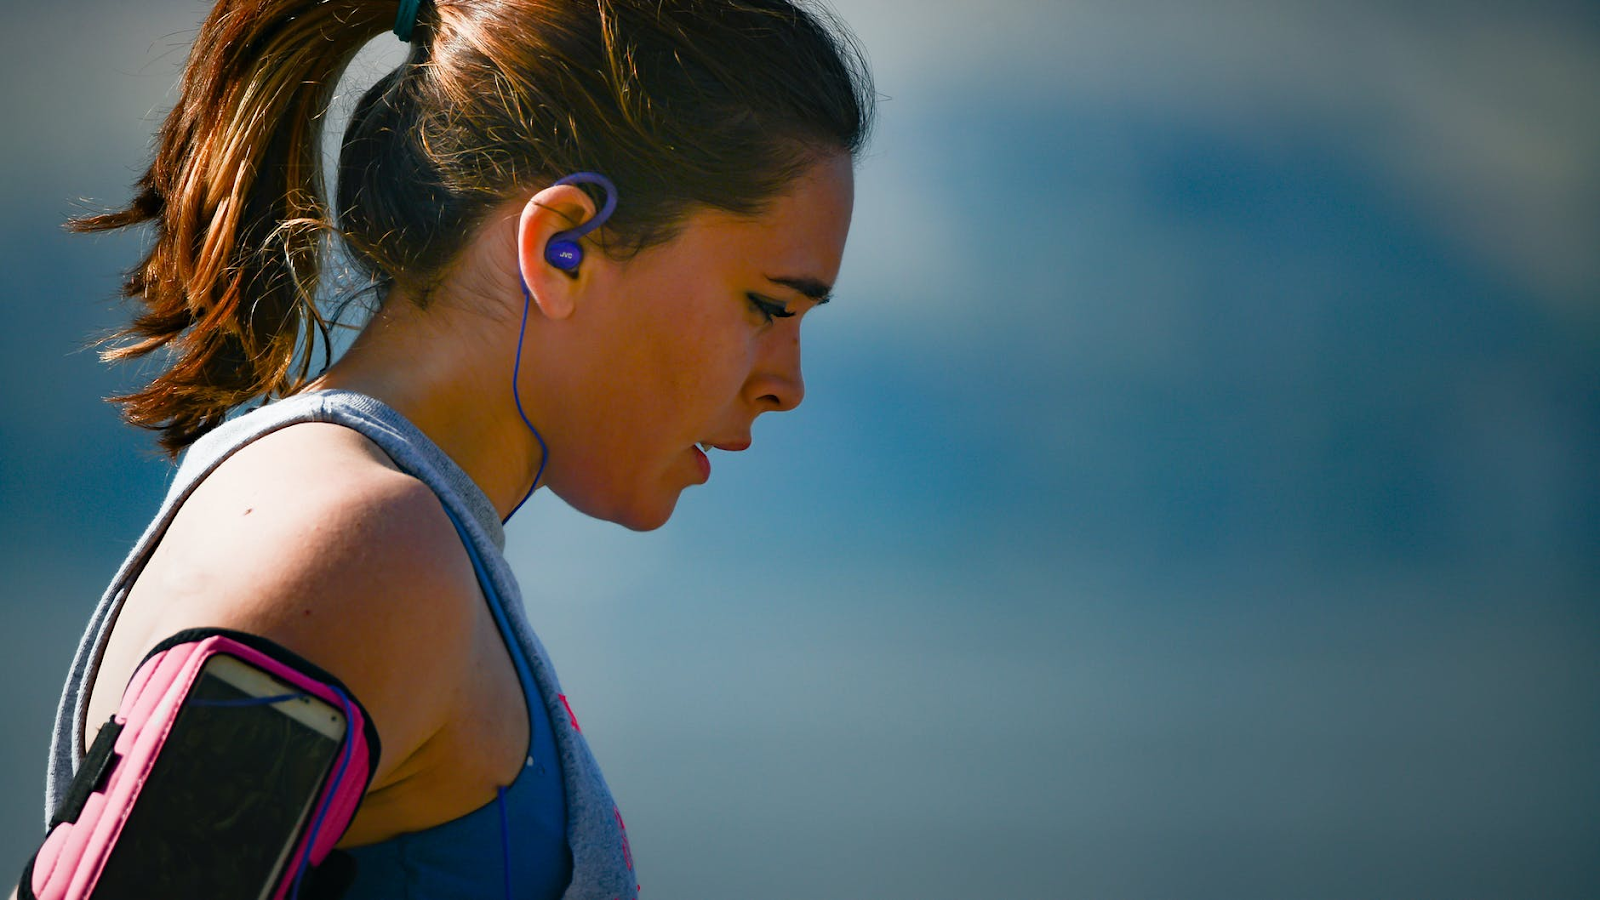 A woman is jogging while wearing a pair of earbuds and an armband that holds her smartphone